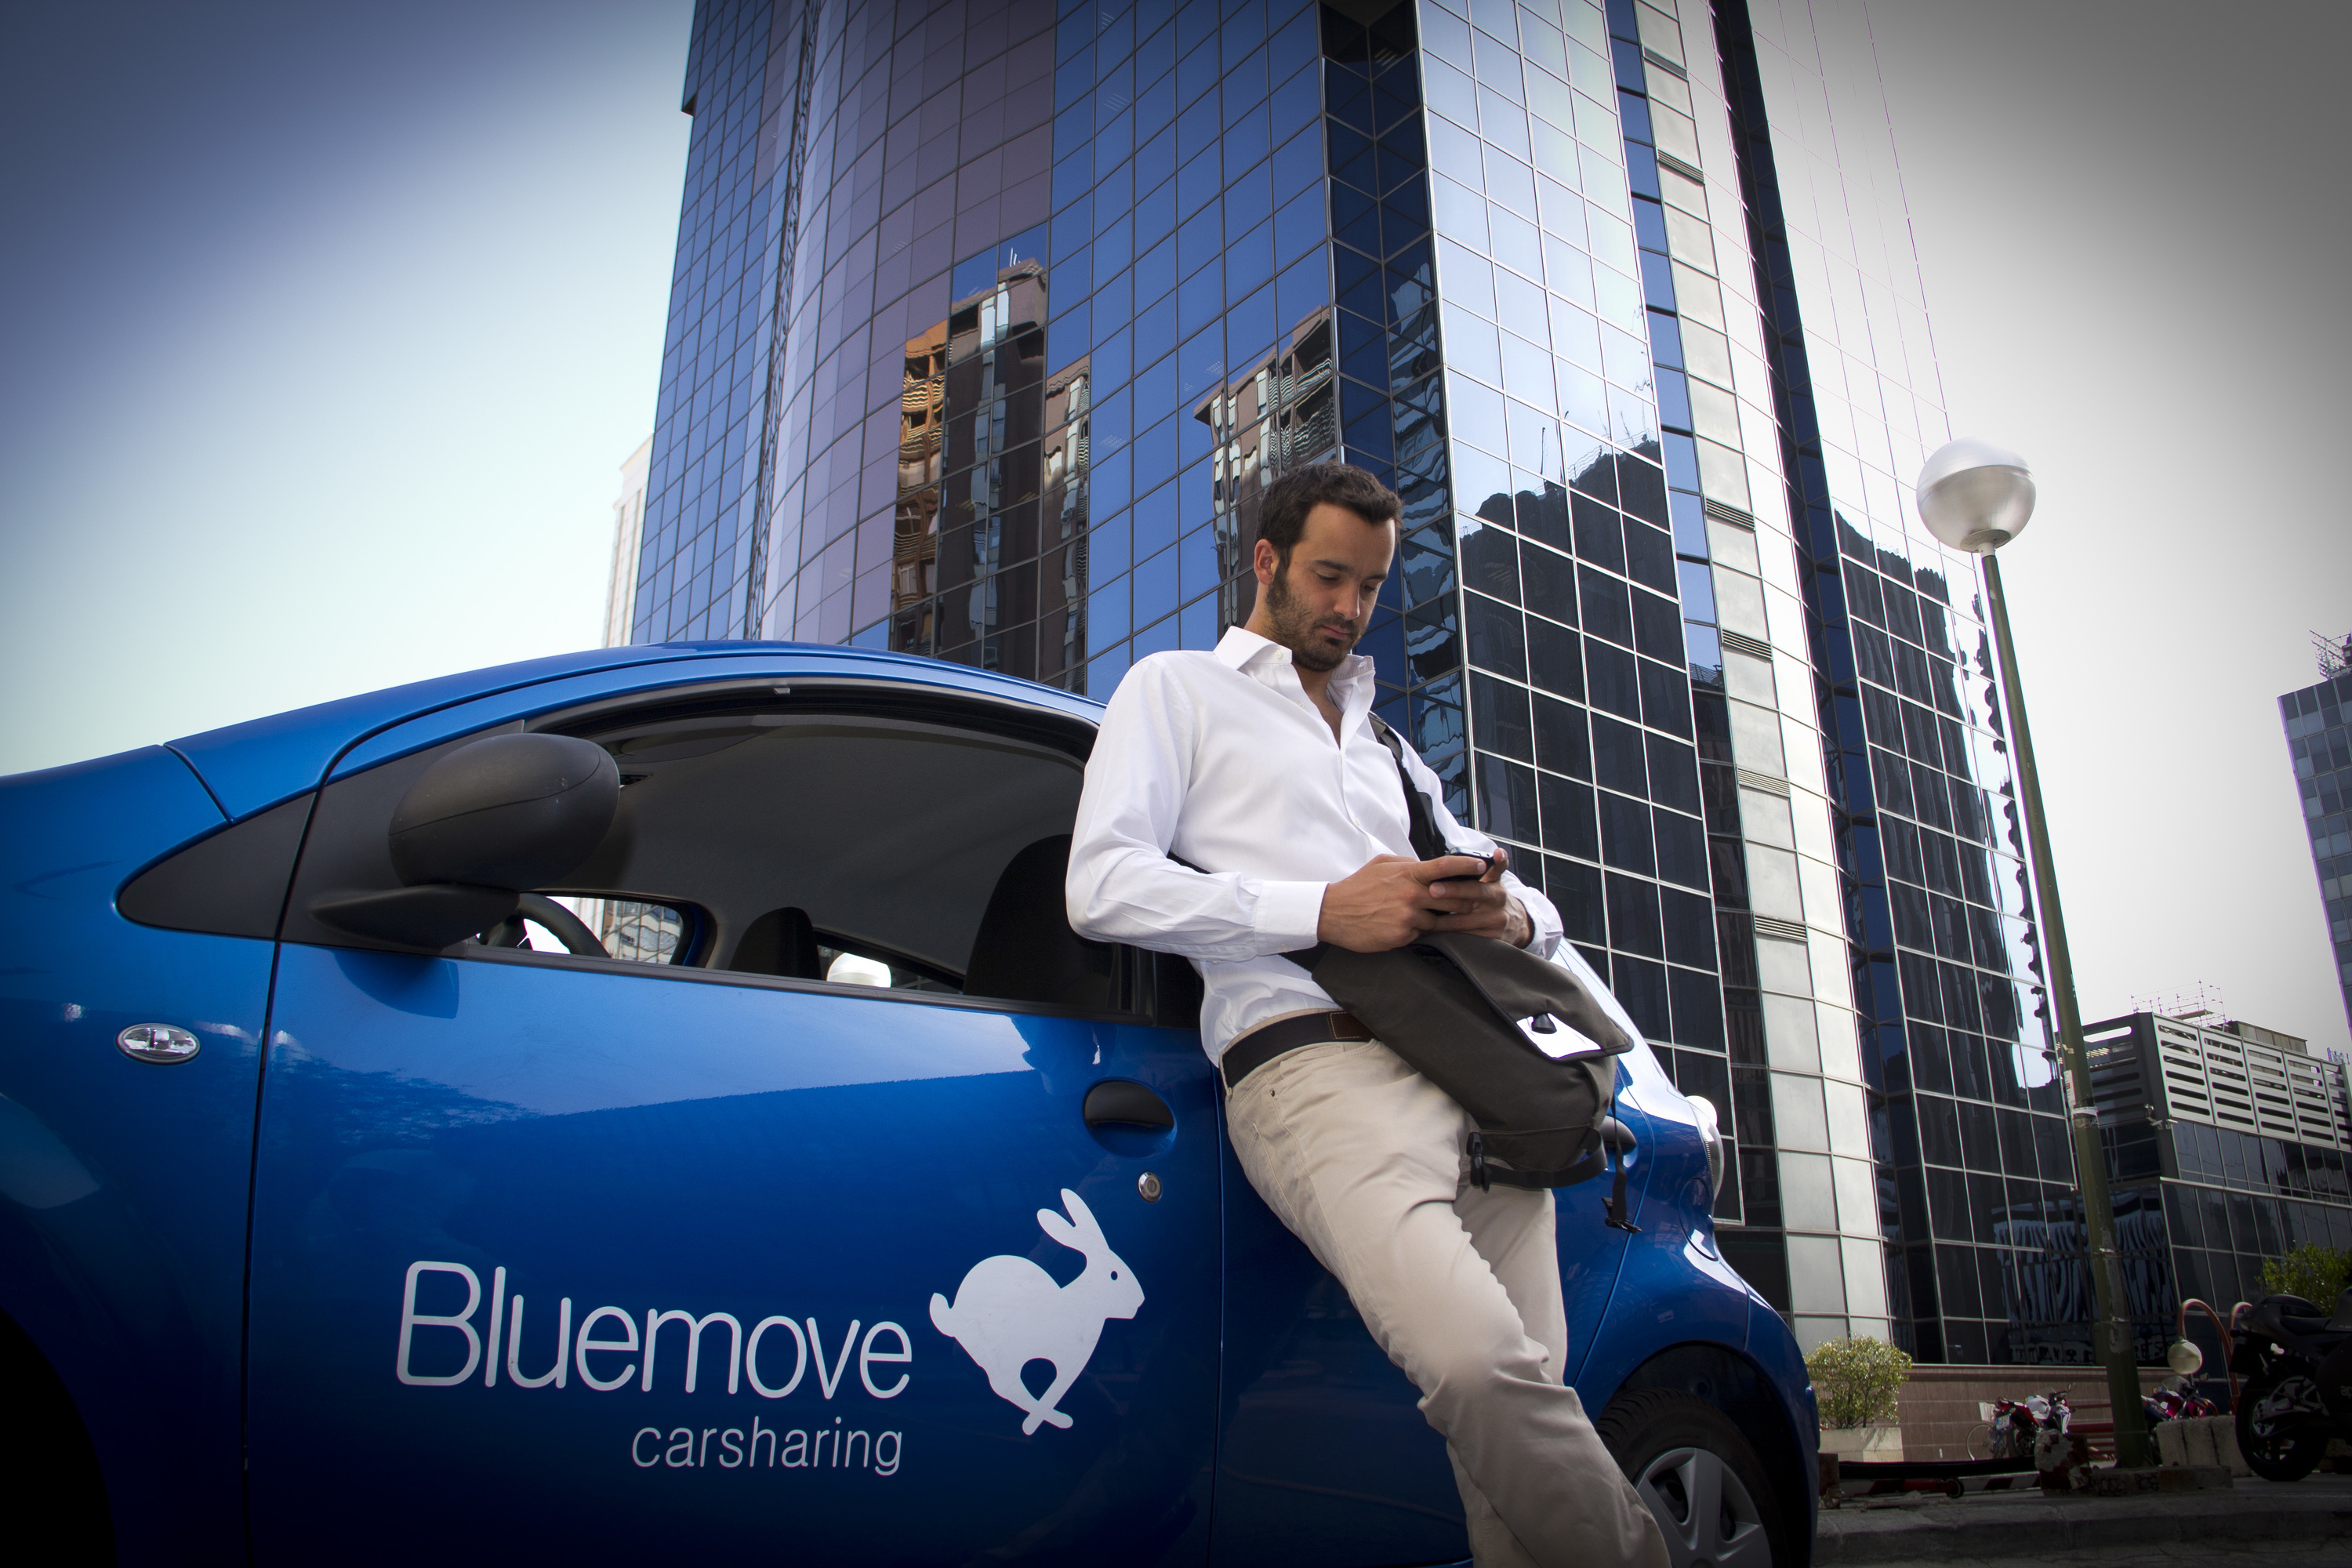 Bluemove - Coches transporte alternativo